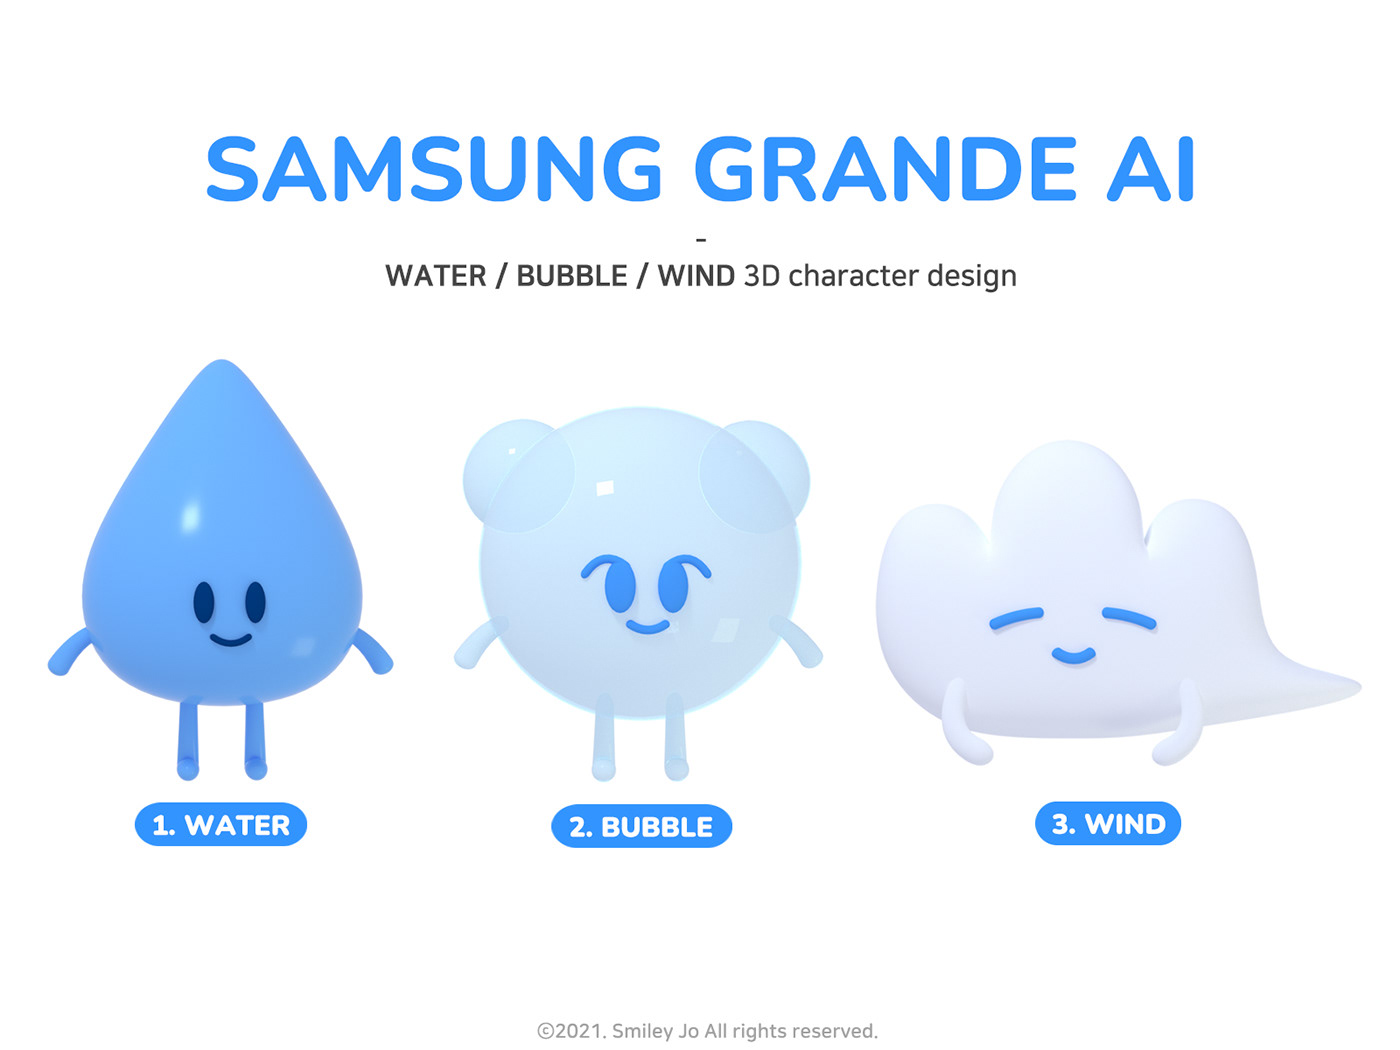 3D 3dcharacter 3dmodeling Character characterdesign graphic Promotion Samsung